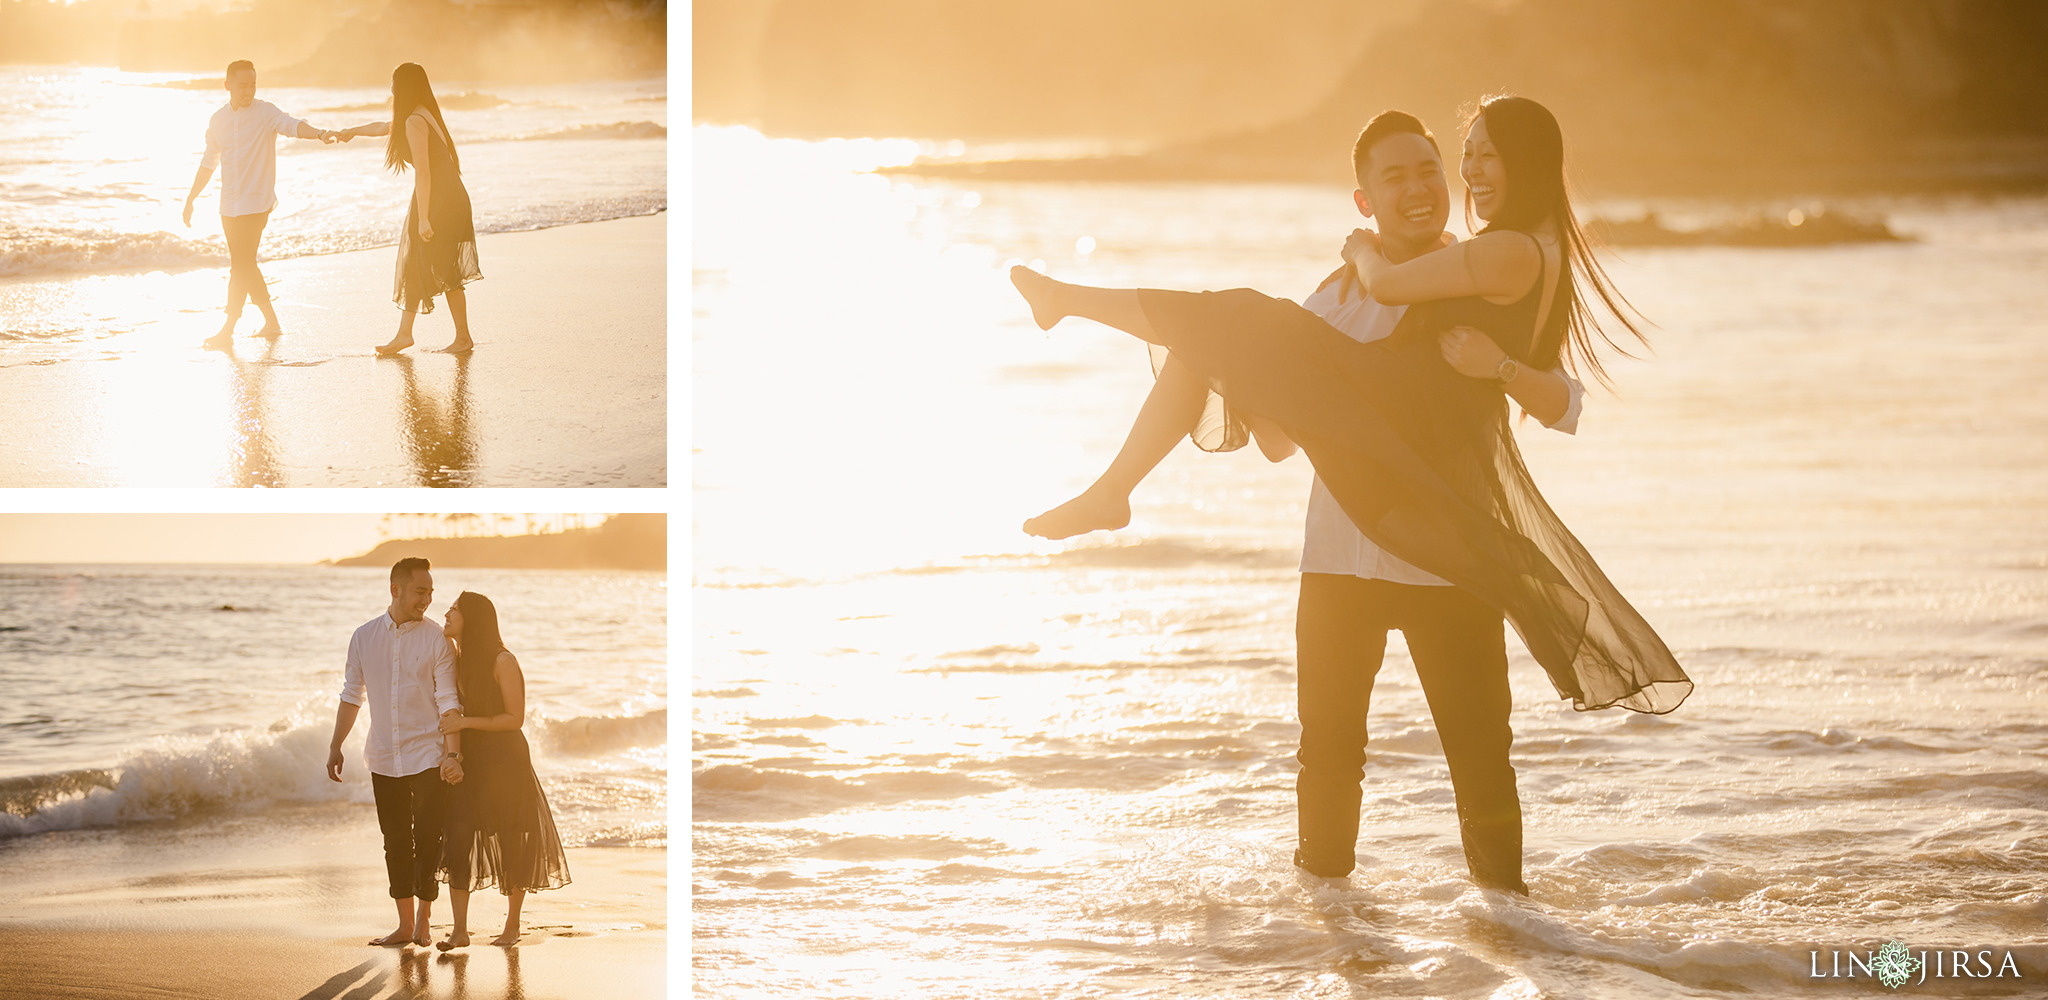 06 Heisler Beach Orange County Proposal Engagement Photography